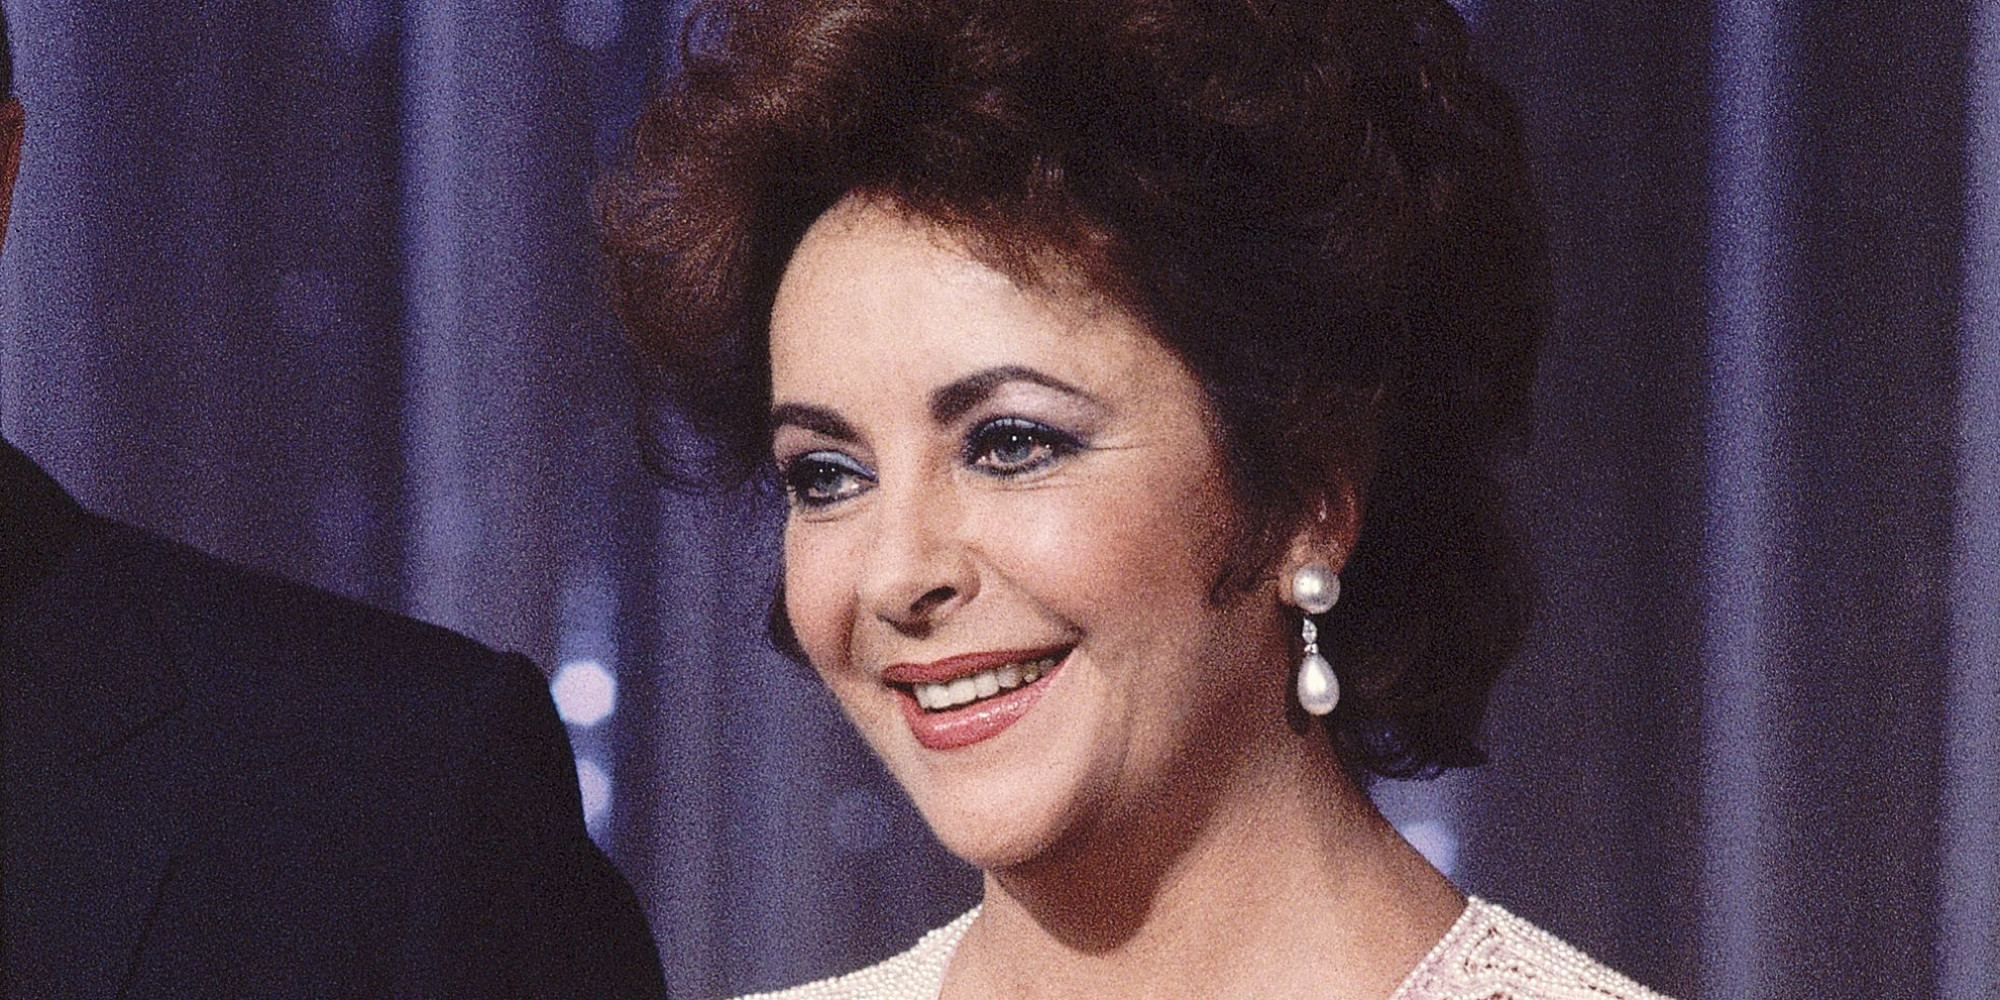 Actress Elizabeth Taylor on Bob Hope TV special on Sept. 13, 1982. (AP Photo/Reed Saxon)